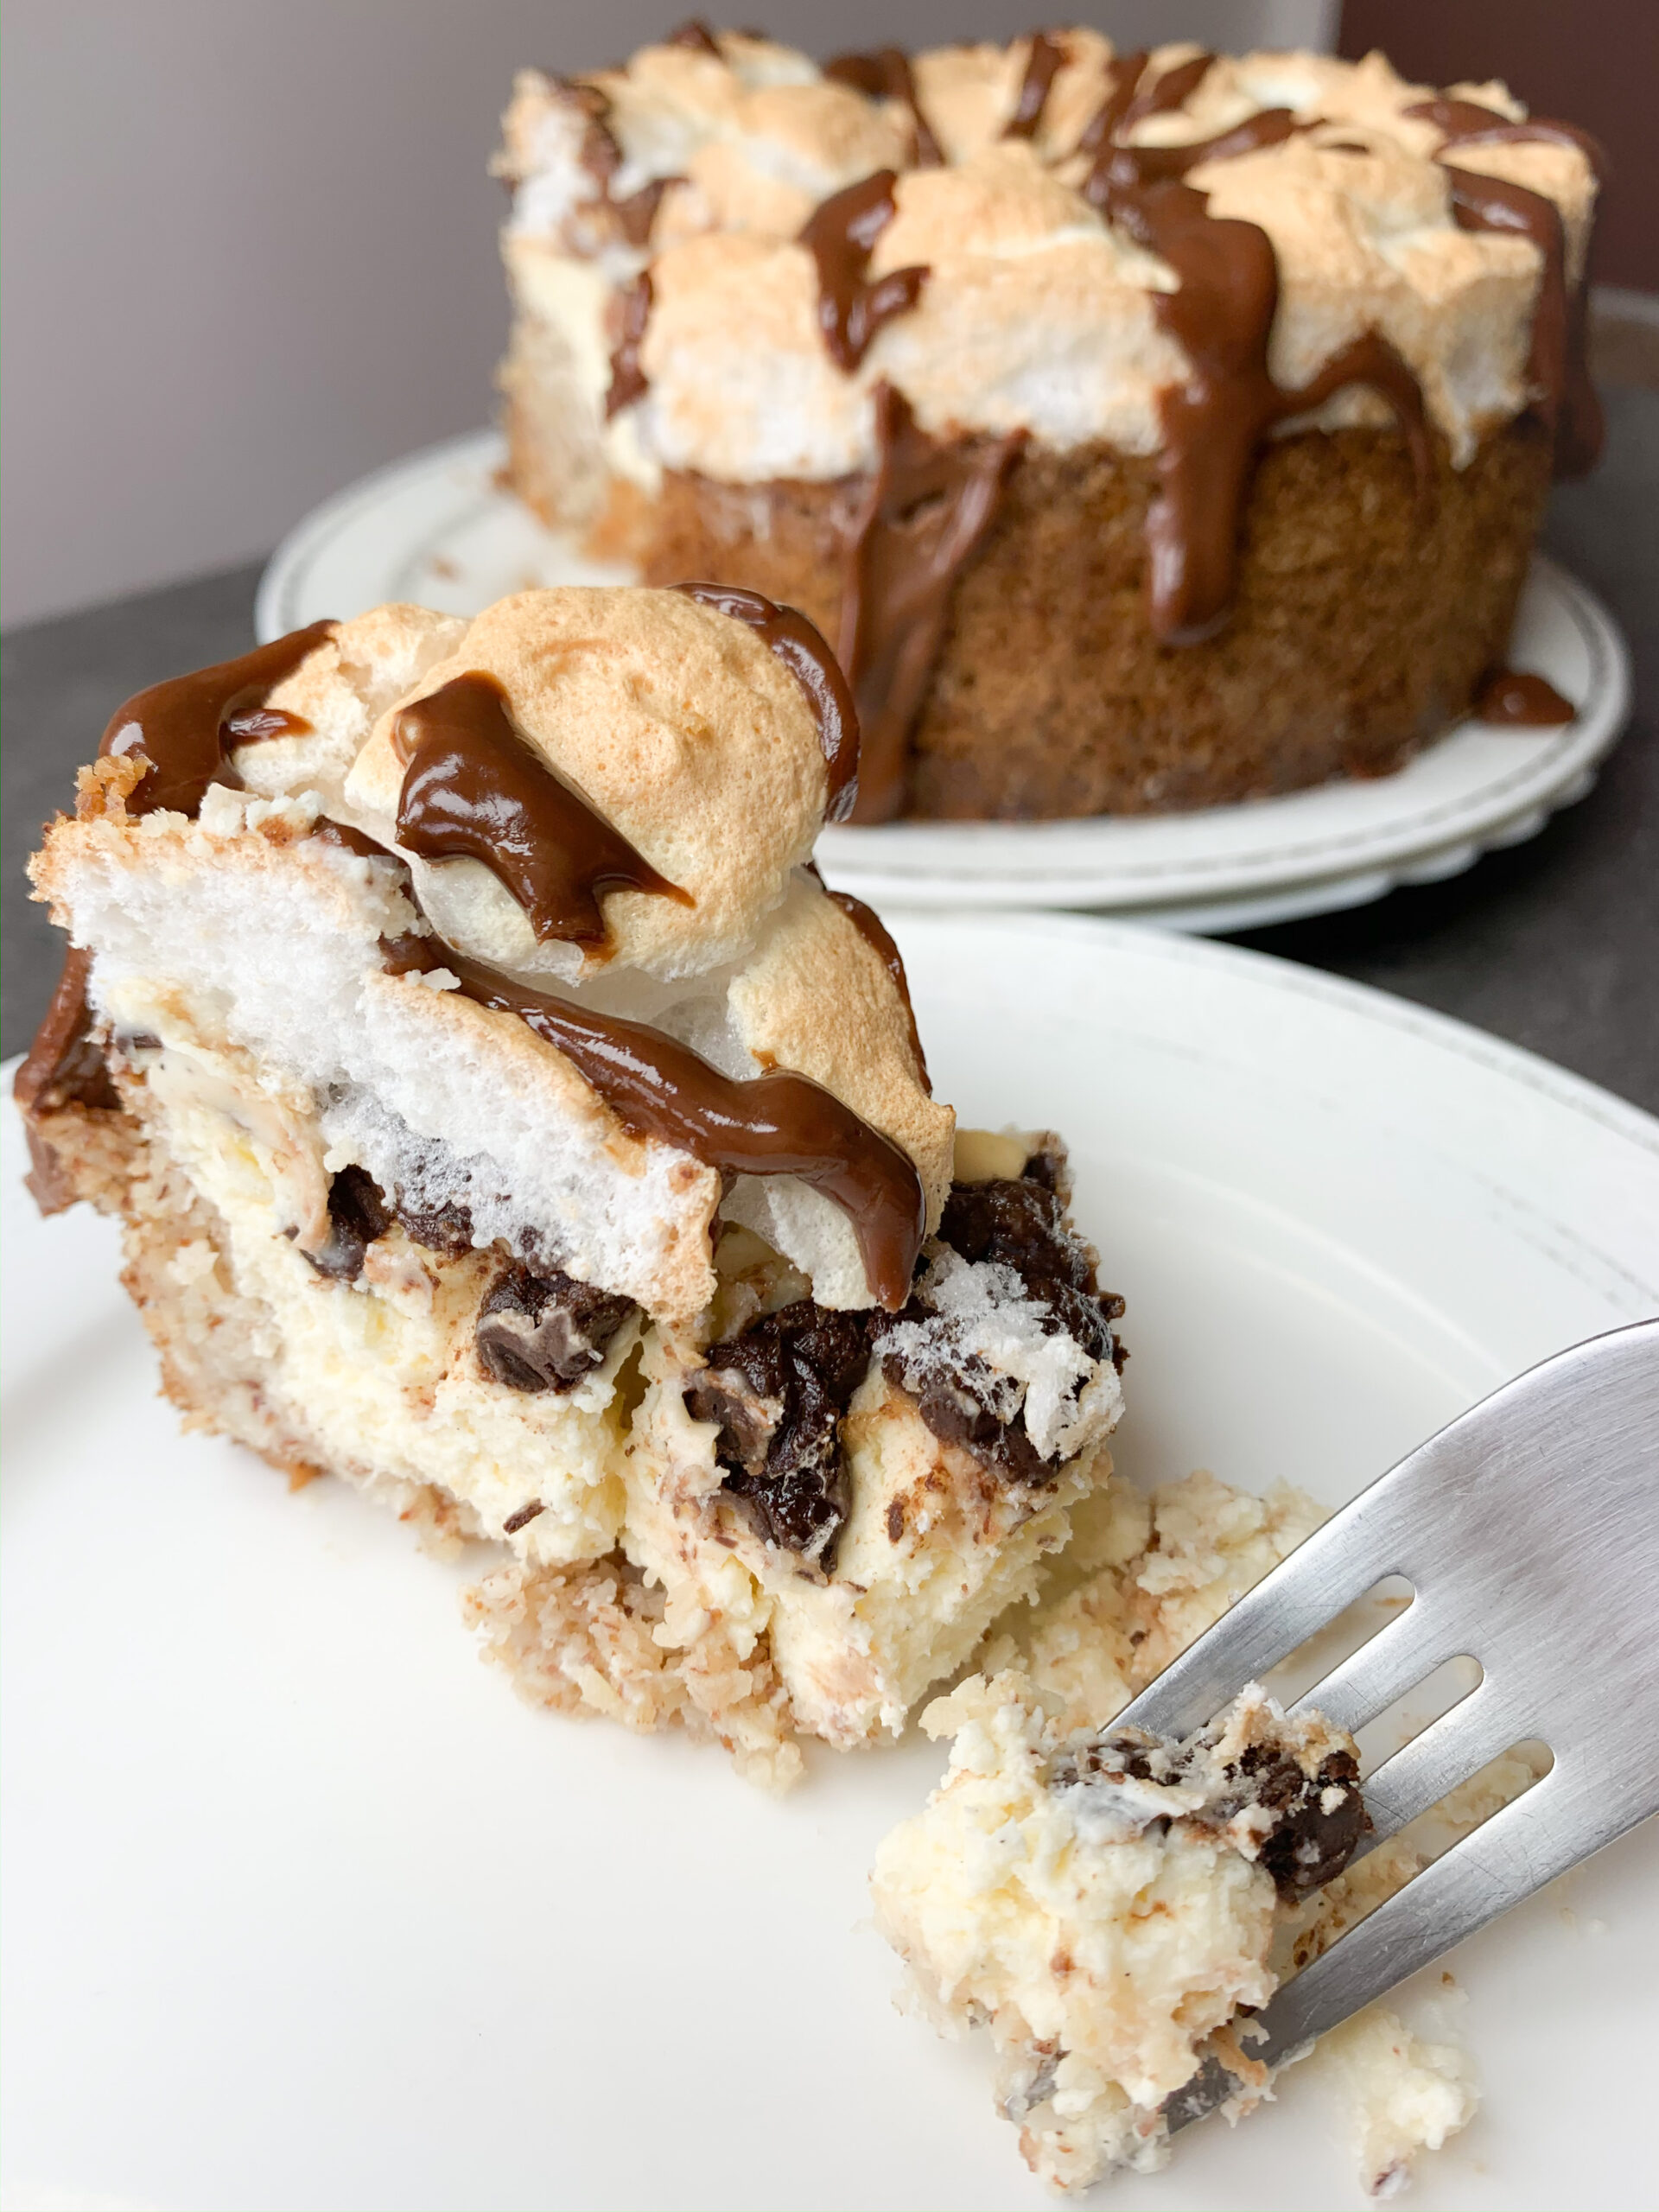 Picture of slice of low carb meringue cheesecake with chocolate that looks like S'mores cheesecake